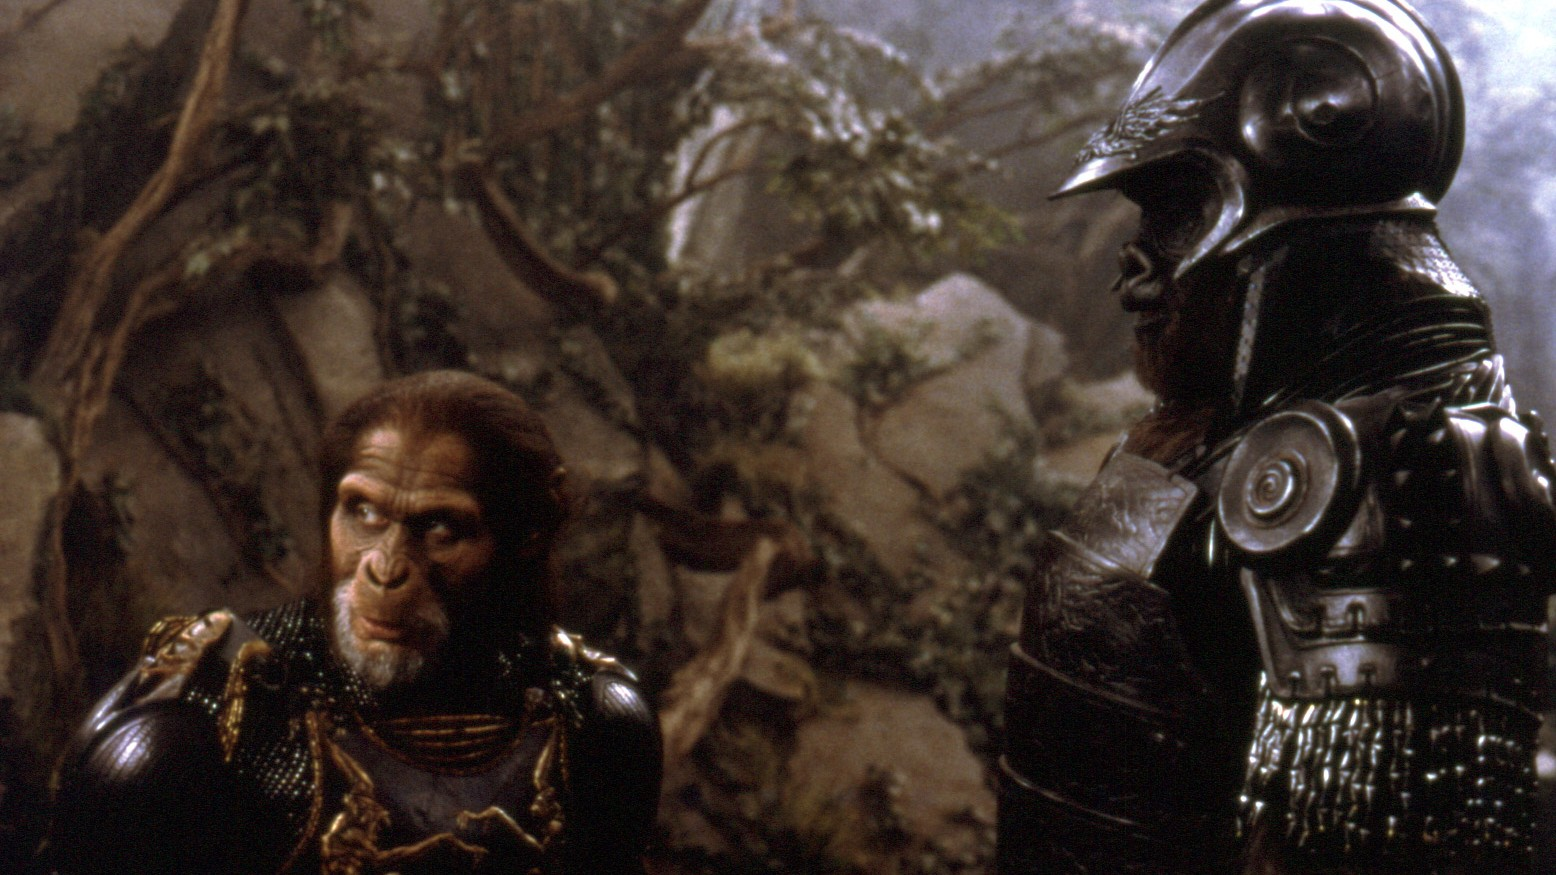 This week we watch the Planet of the Apes remake.